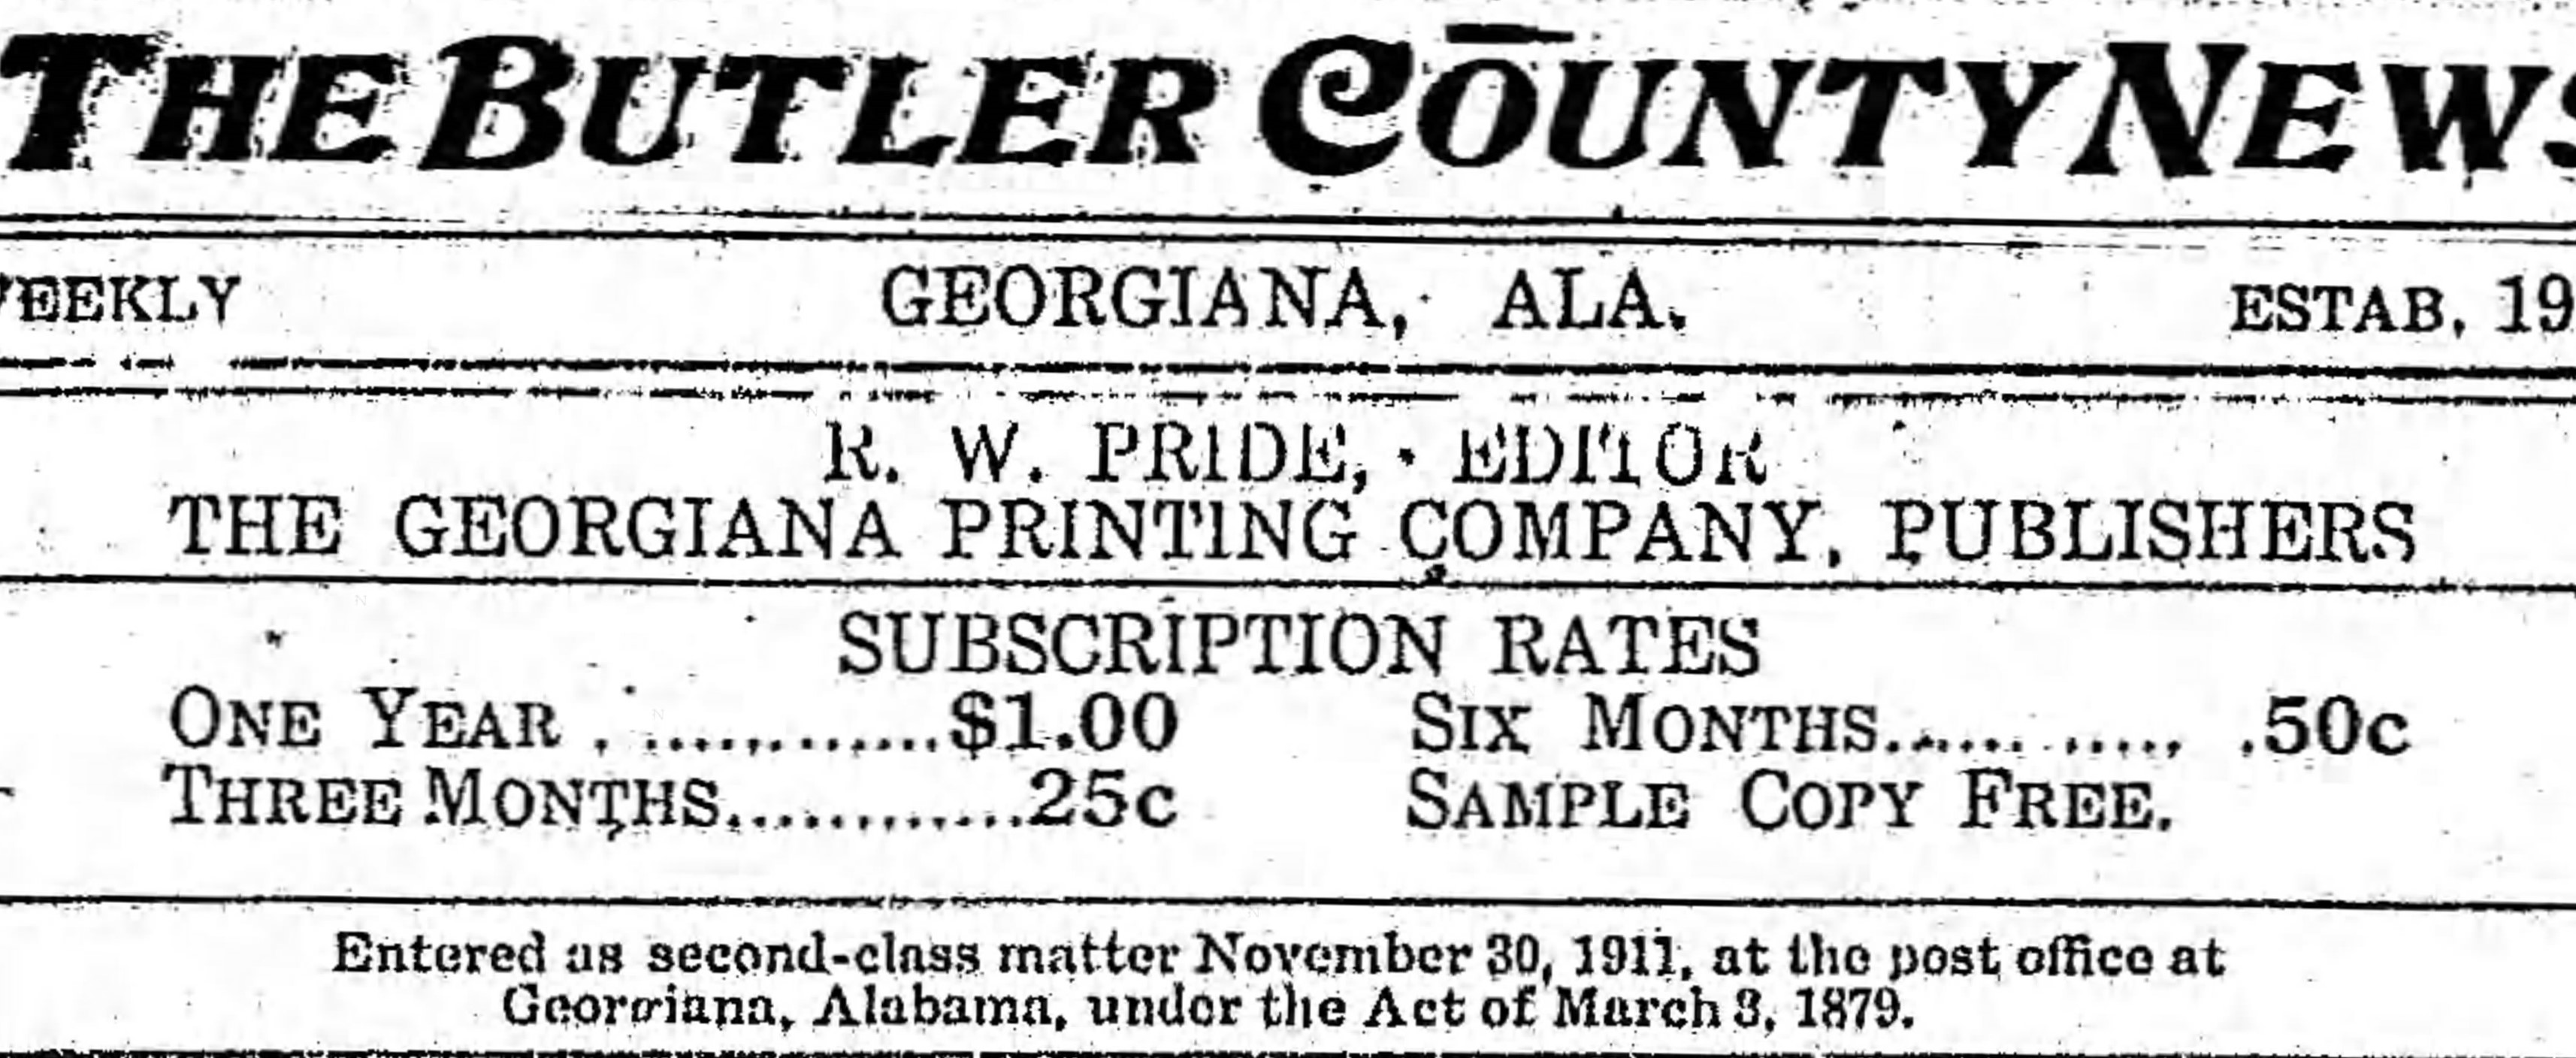 Patron – The Butler County News – 1914 includes personal news from communities of Starlington and East Garland Alabama.